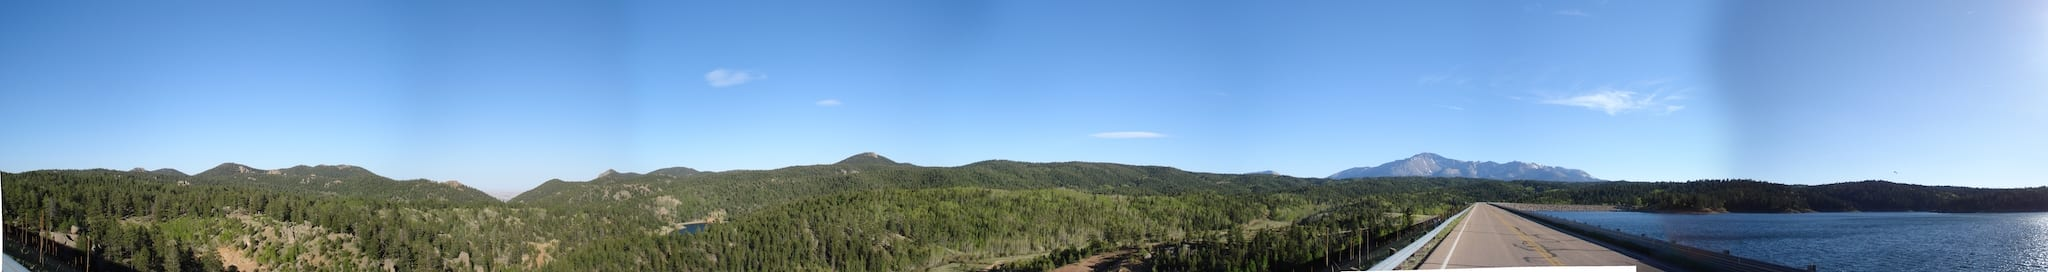 Rampart Reservoir Dam Pike National Forest Pikes Peak in Distance Panorama